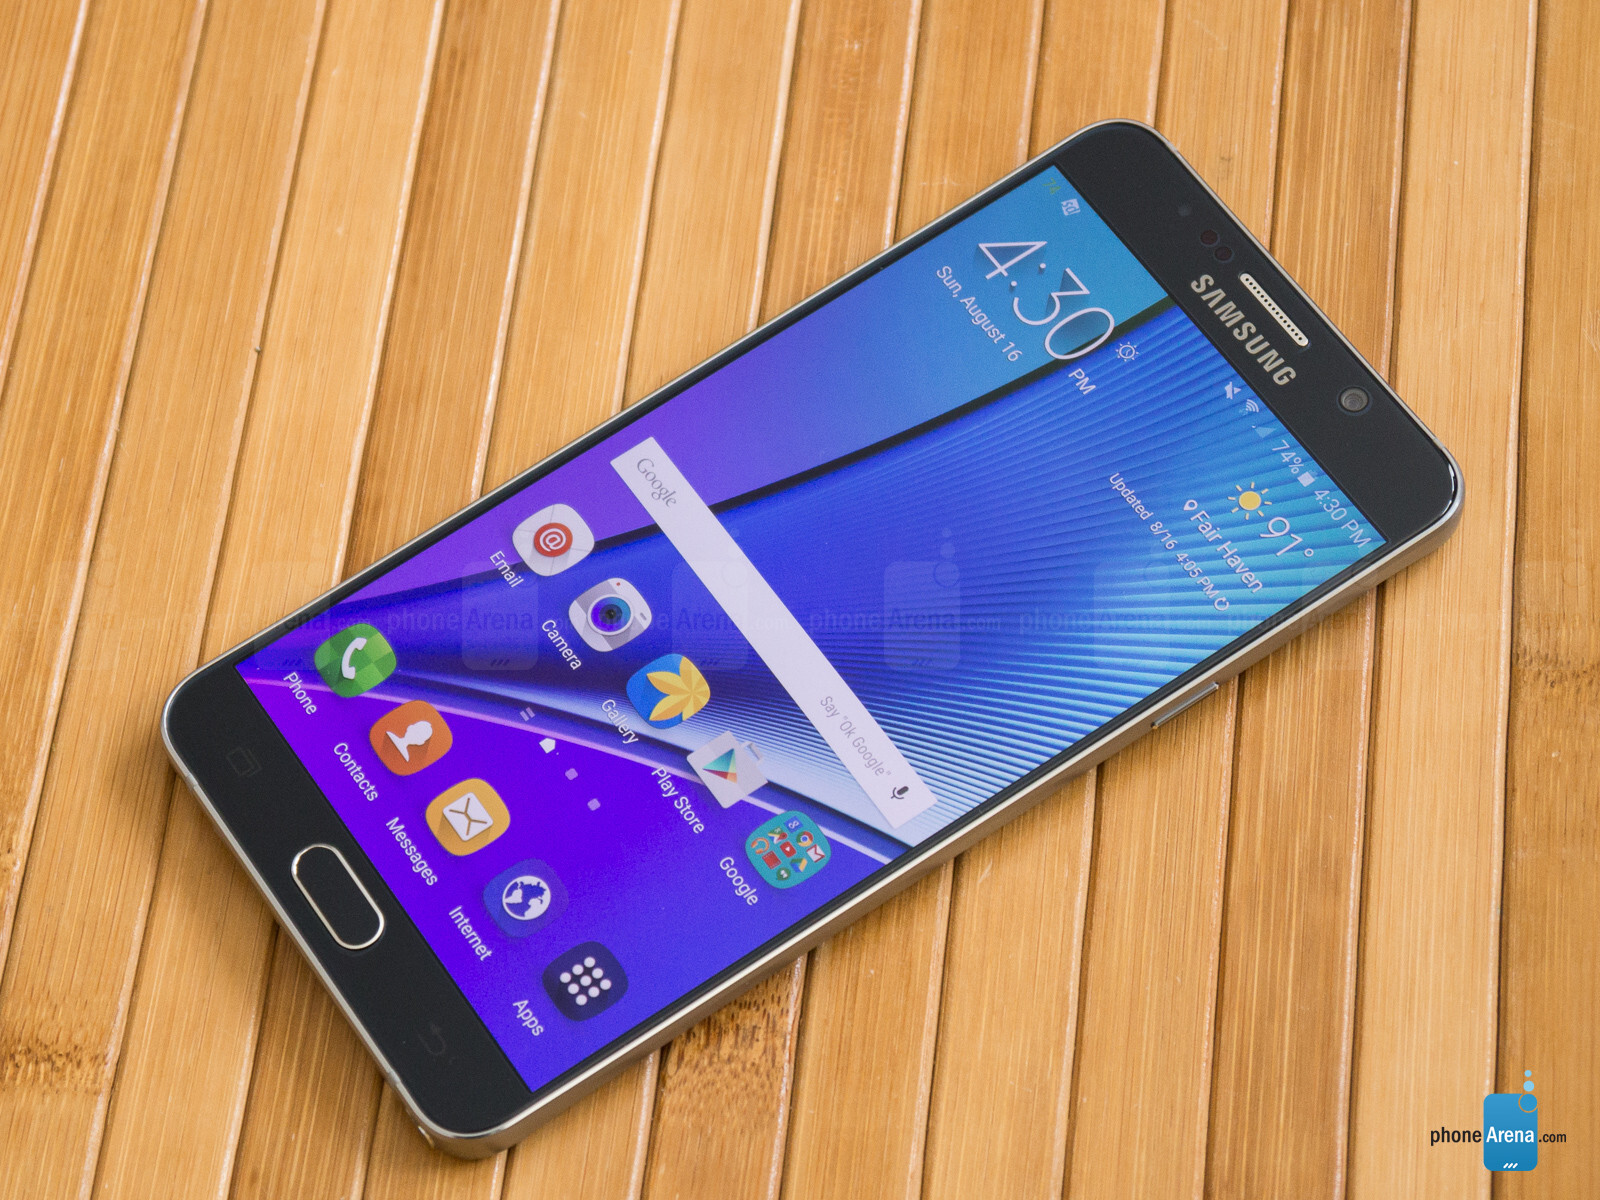 Samsung Galaxy Note 5 Review - PhoneArena